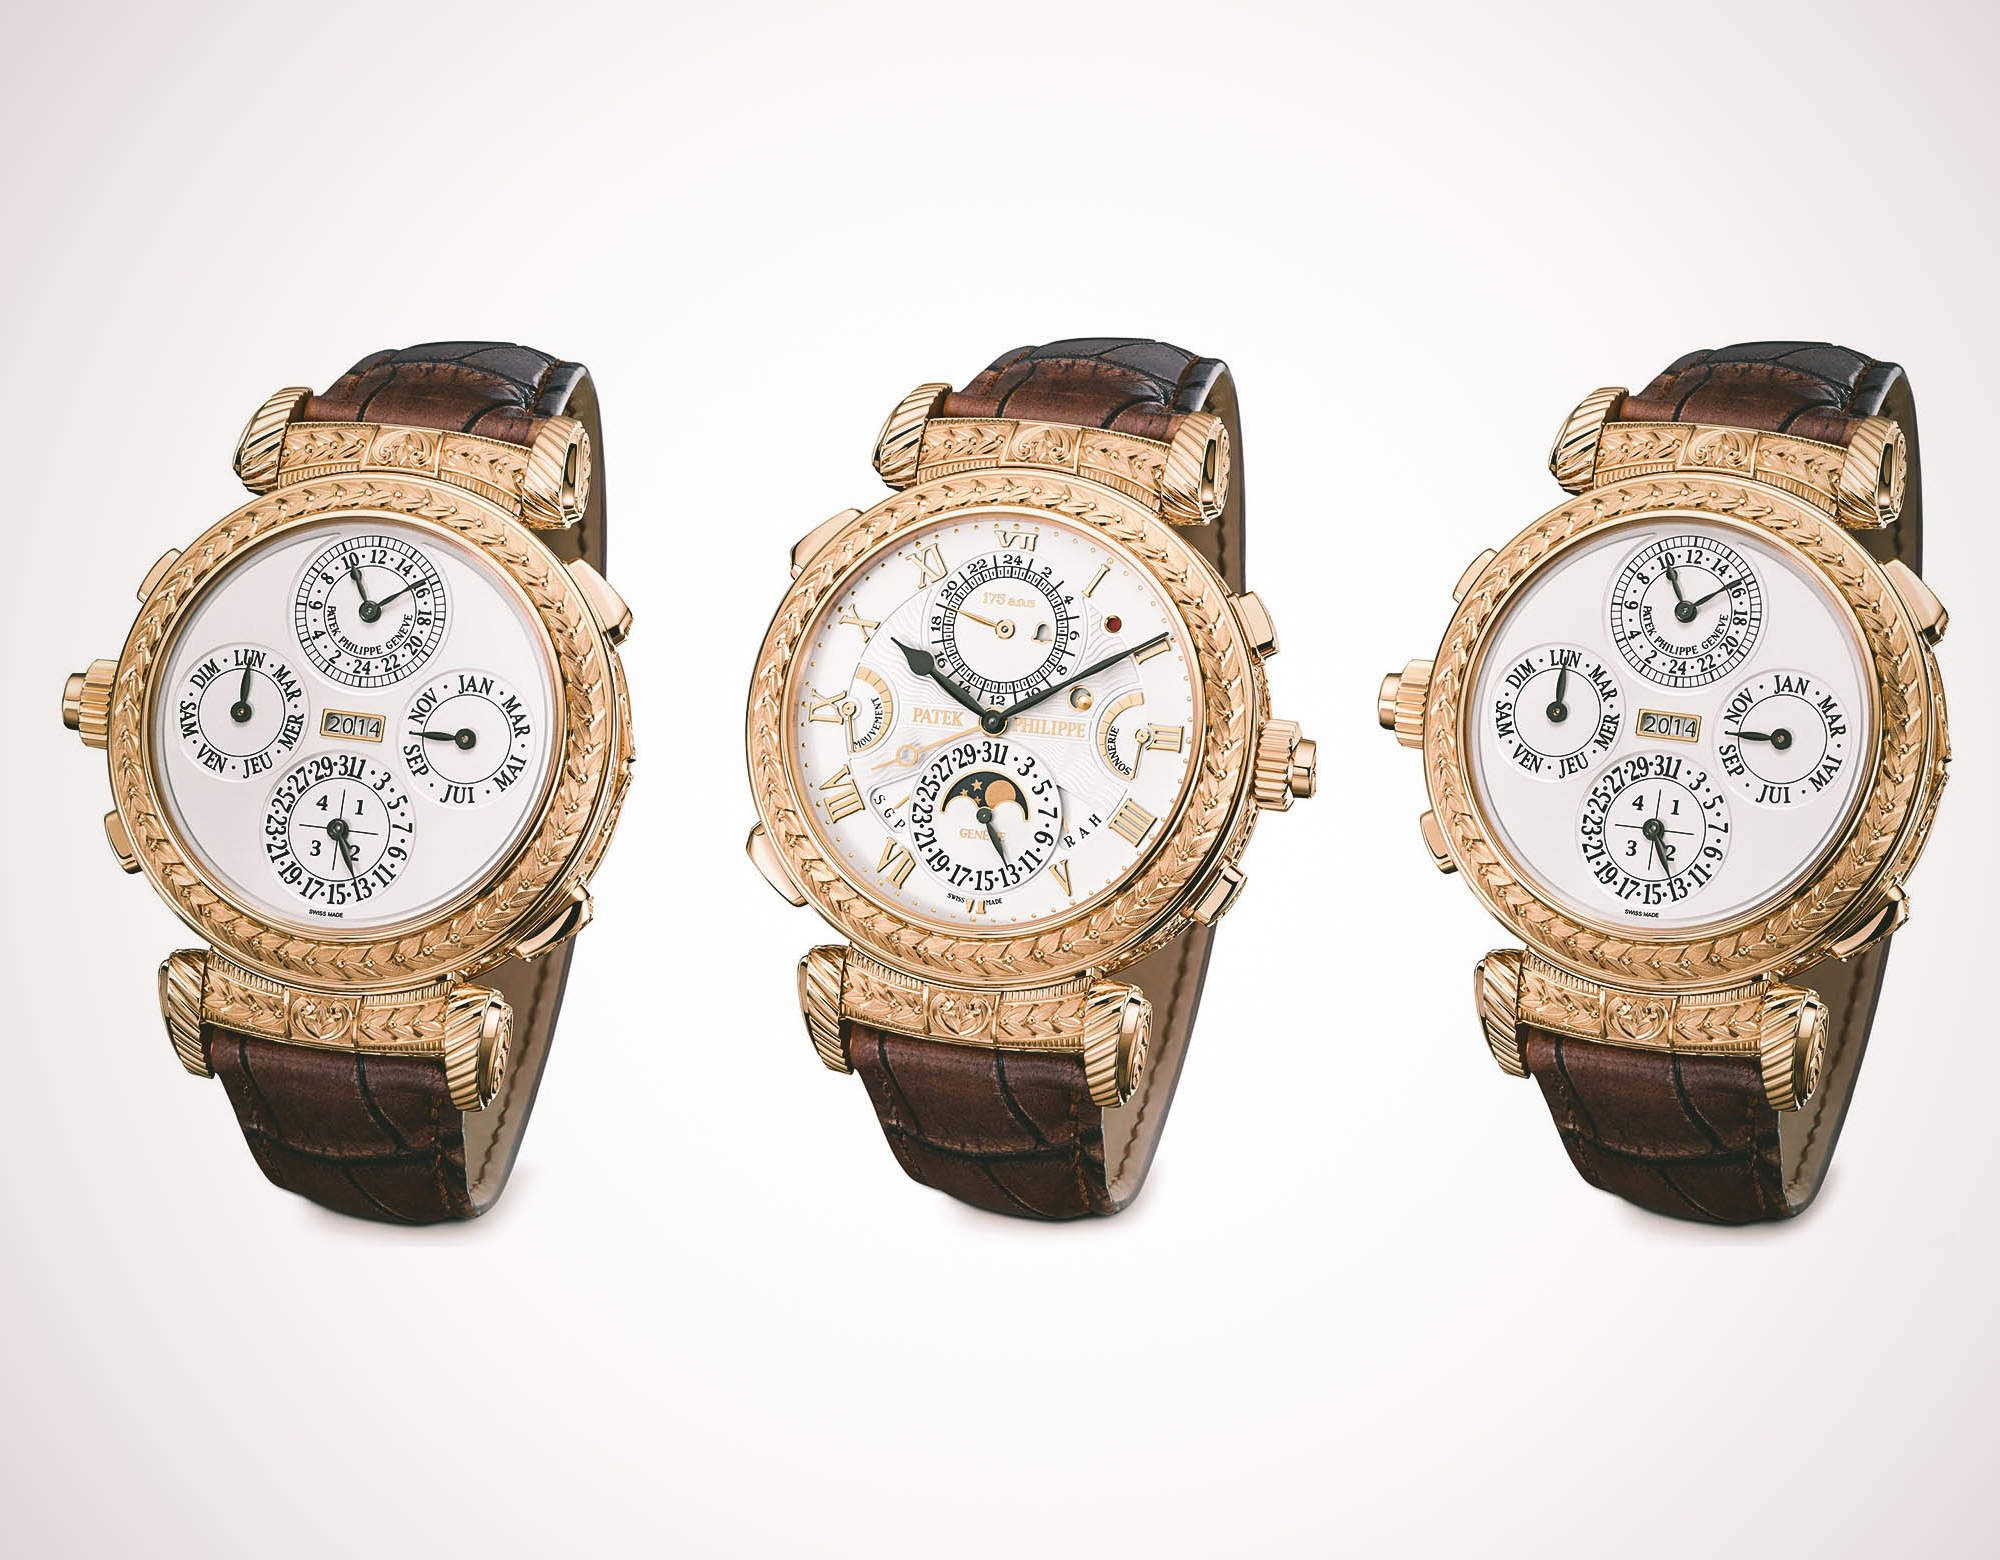 For their 175th anniversary, Patek Philippe brings you their most complicated watch ever.